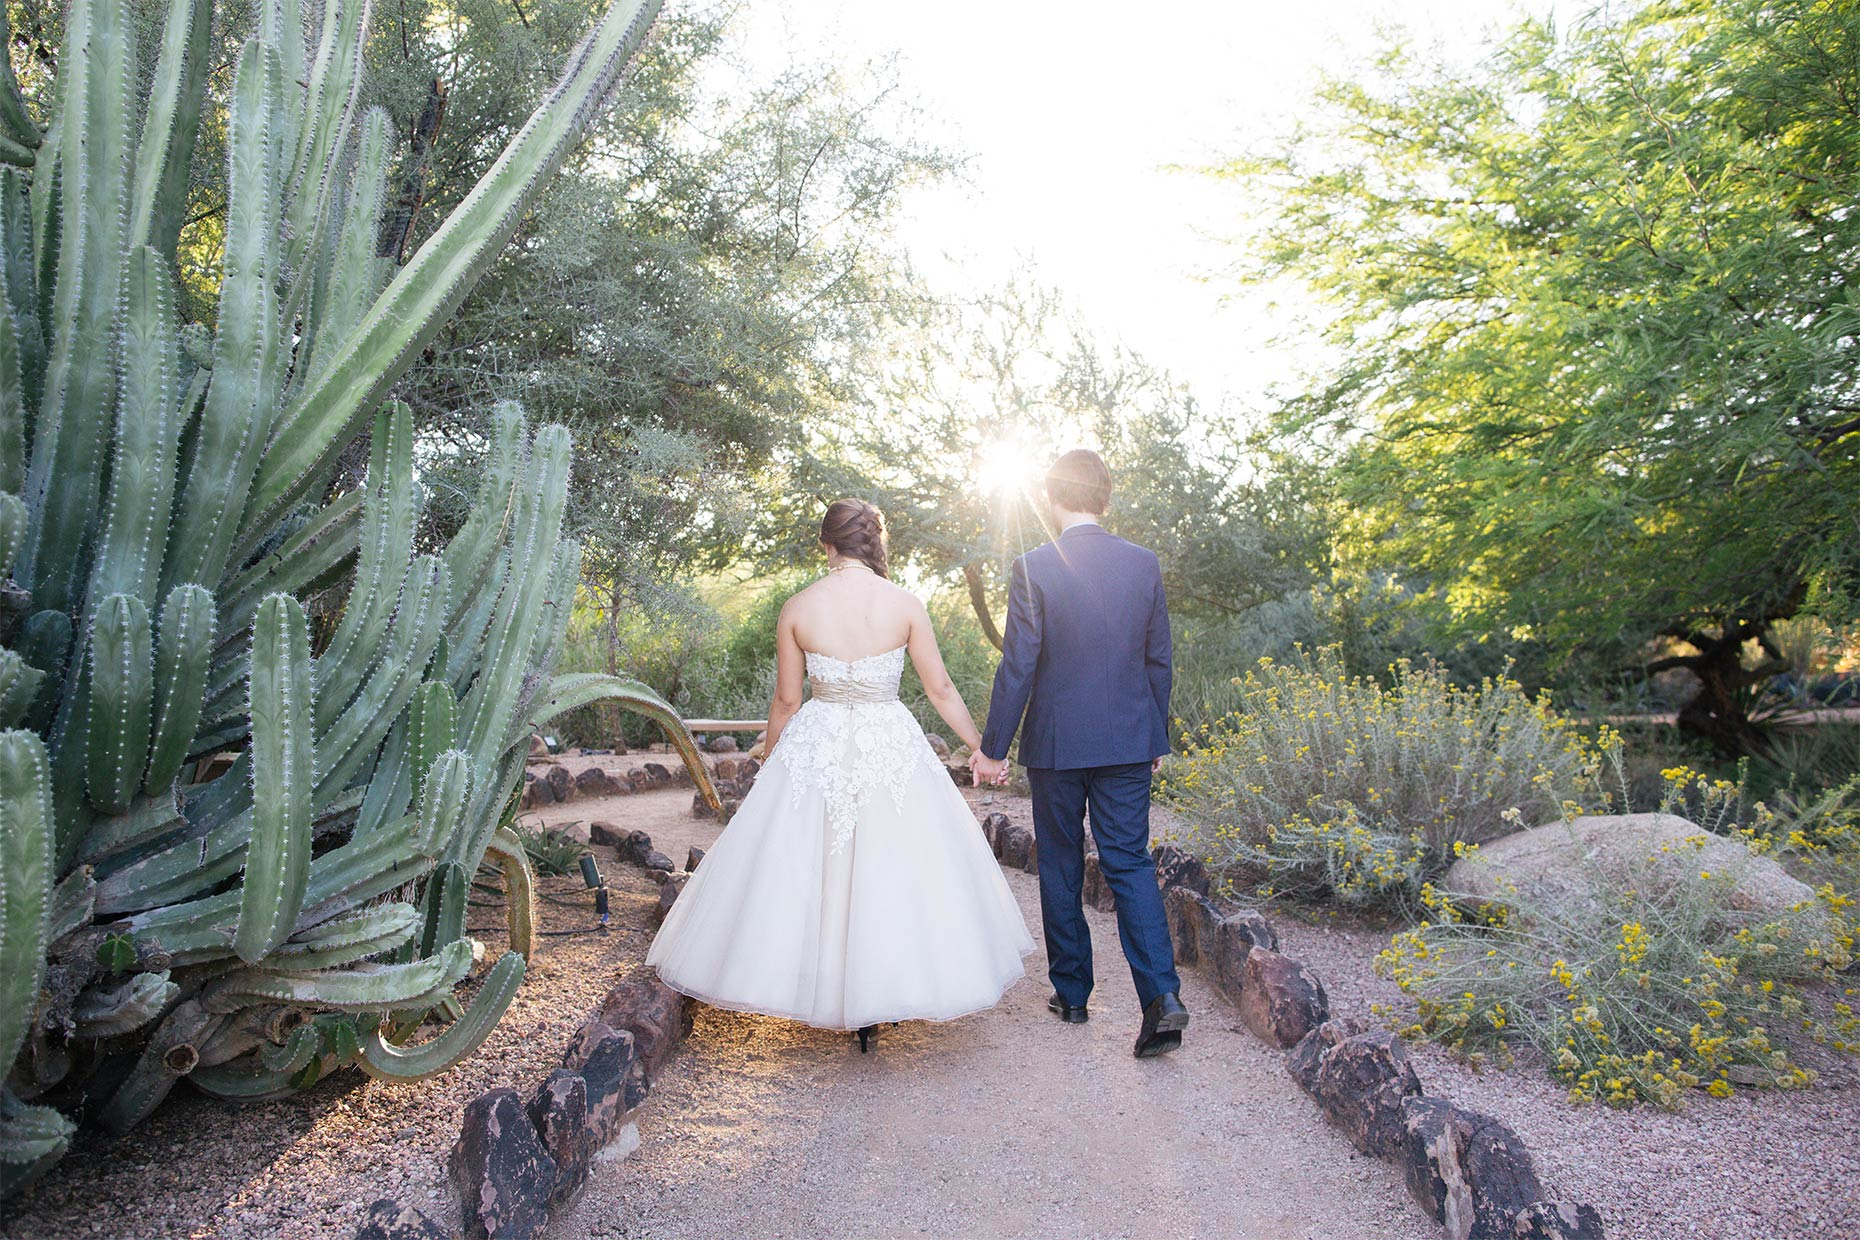 destination wedding Pheonix AZ omaha wedding photographer022